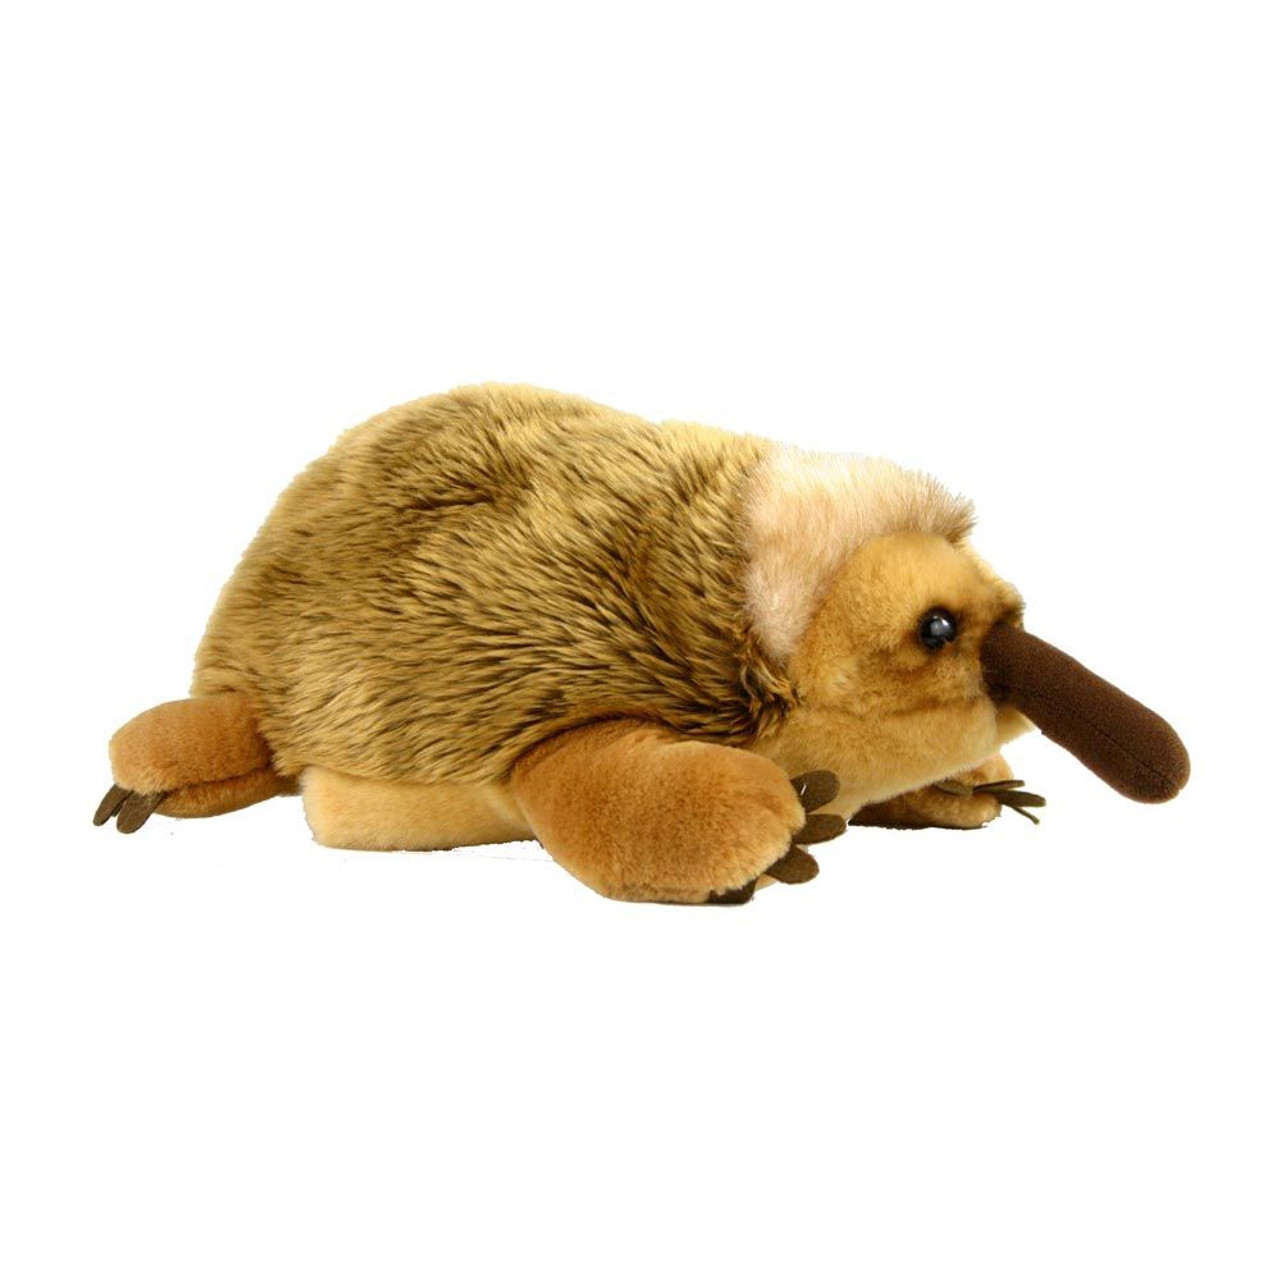 Korimco Wildlife Body Puppet 32cm at Baby Barn Discounts Soft full body wildlife animal hand puppet fits both adults and children's hands.